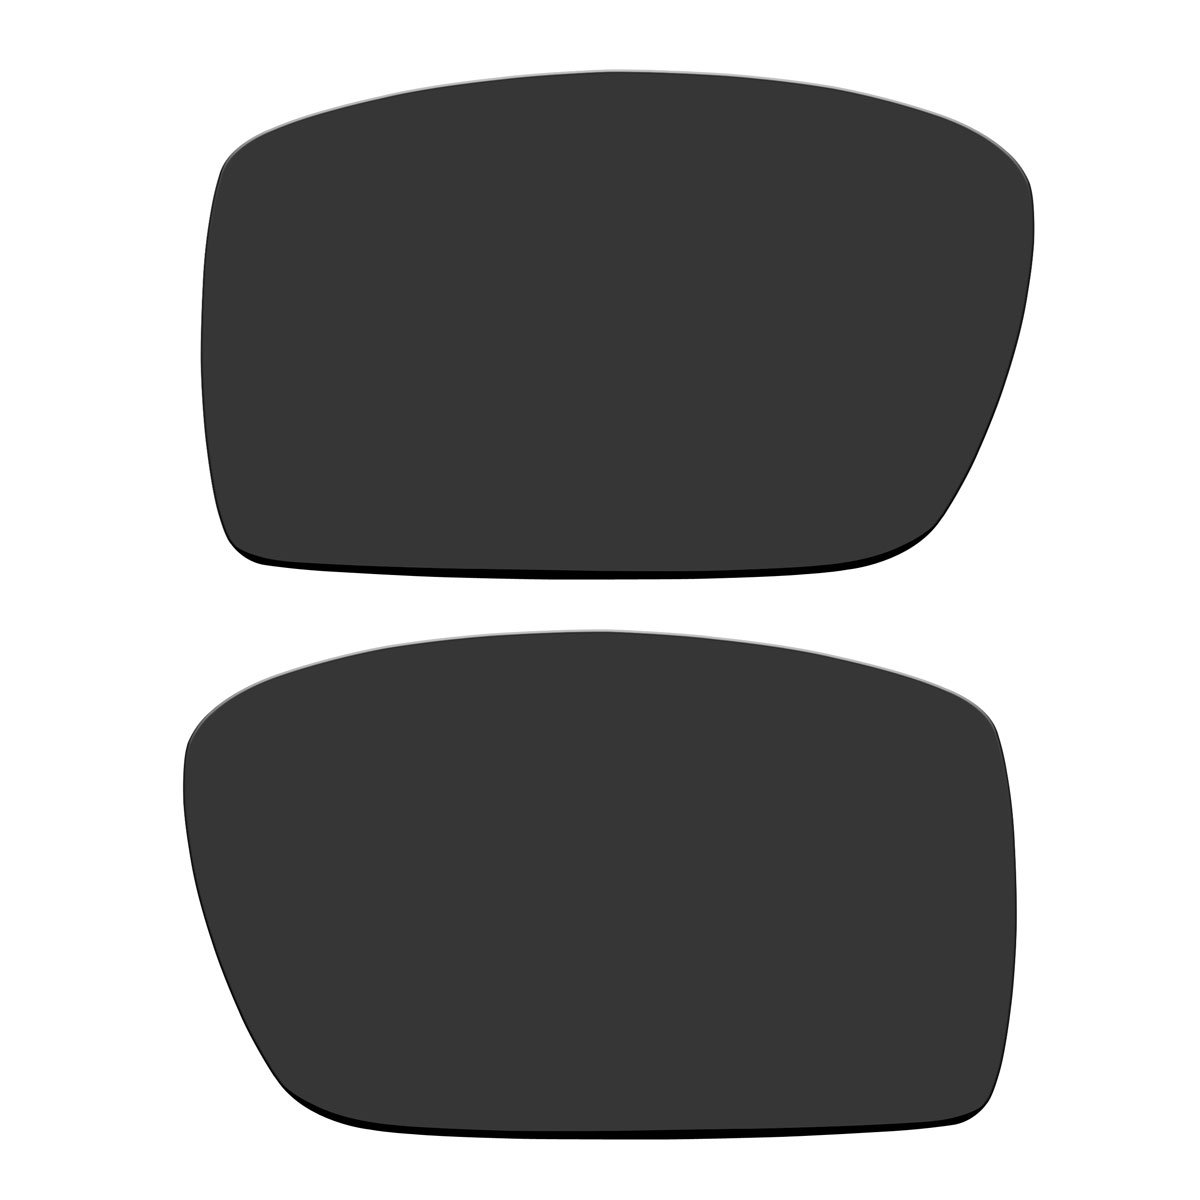 Replacement Polarized Lenses for Oakley Gascan Sunglasses (Black) by aCompatible